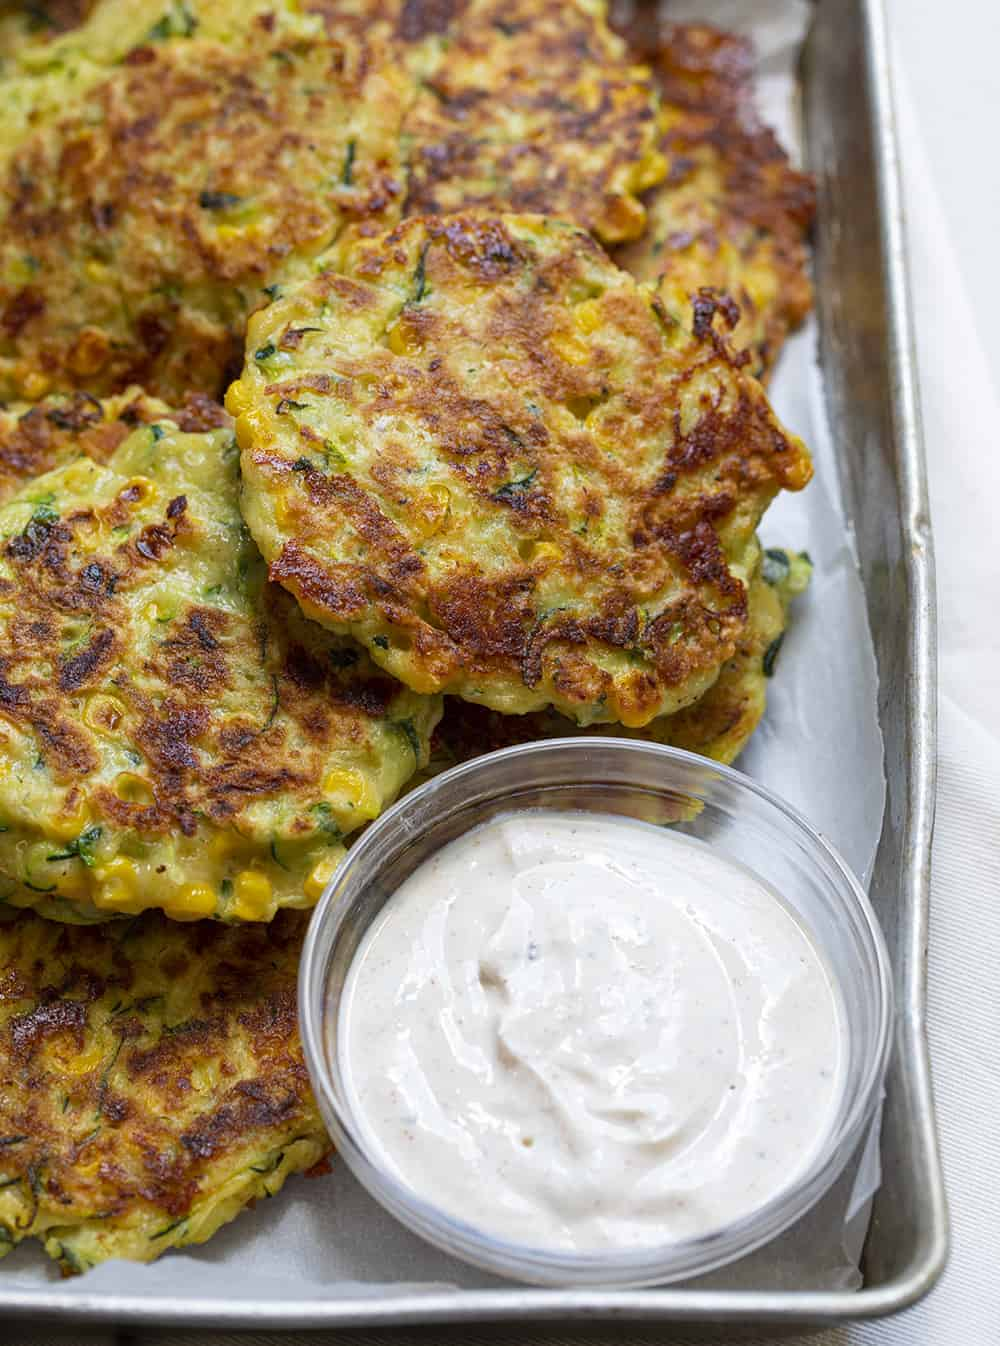 Zucchini Fritters in a Pan with Dipping Sauce